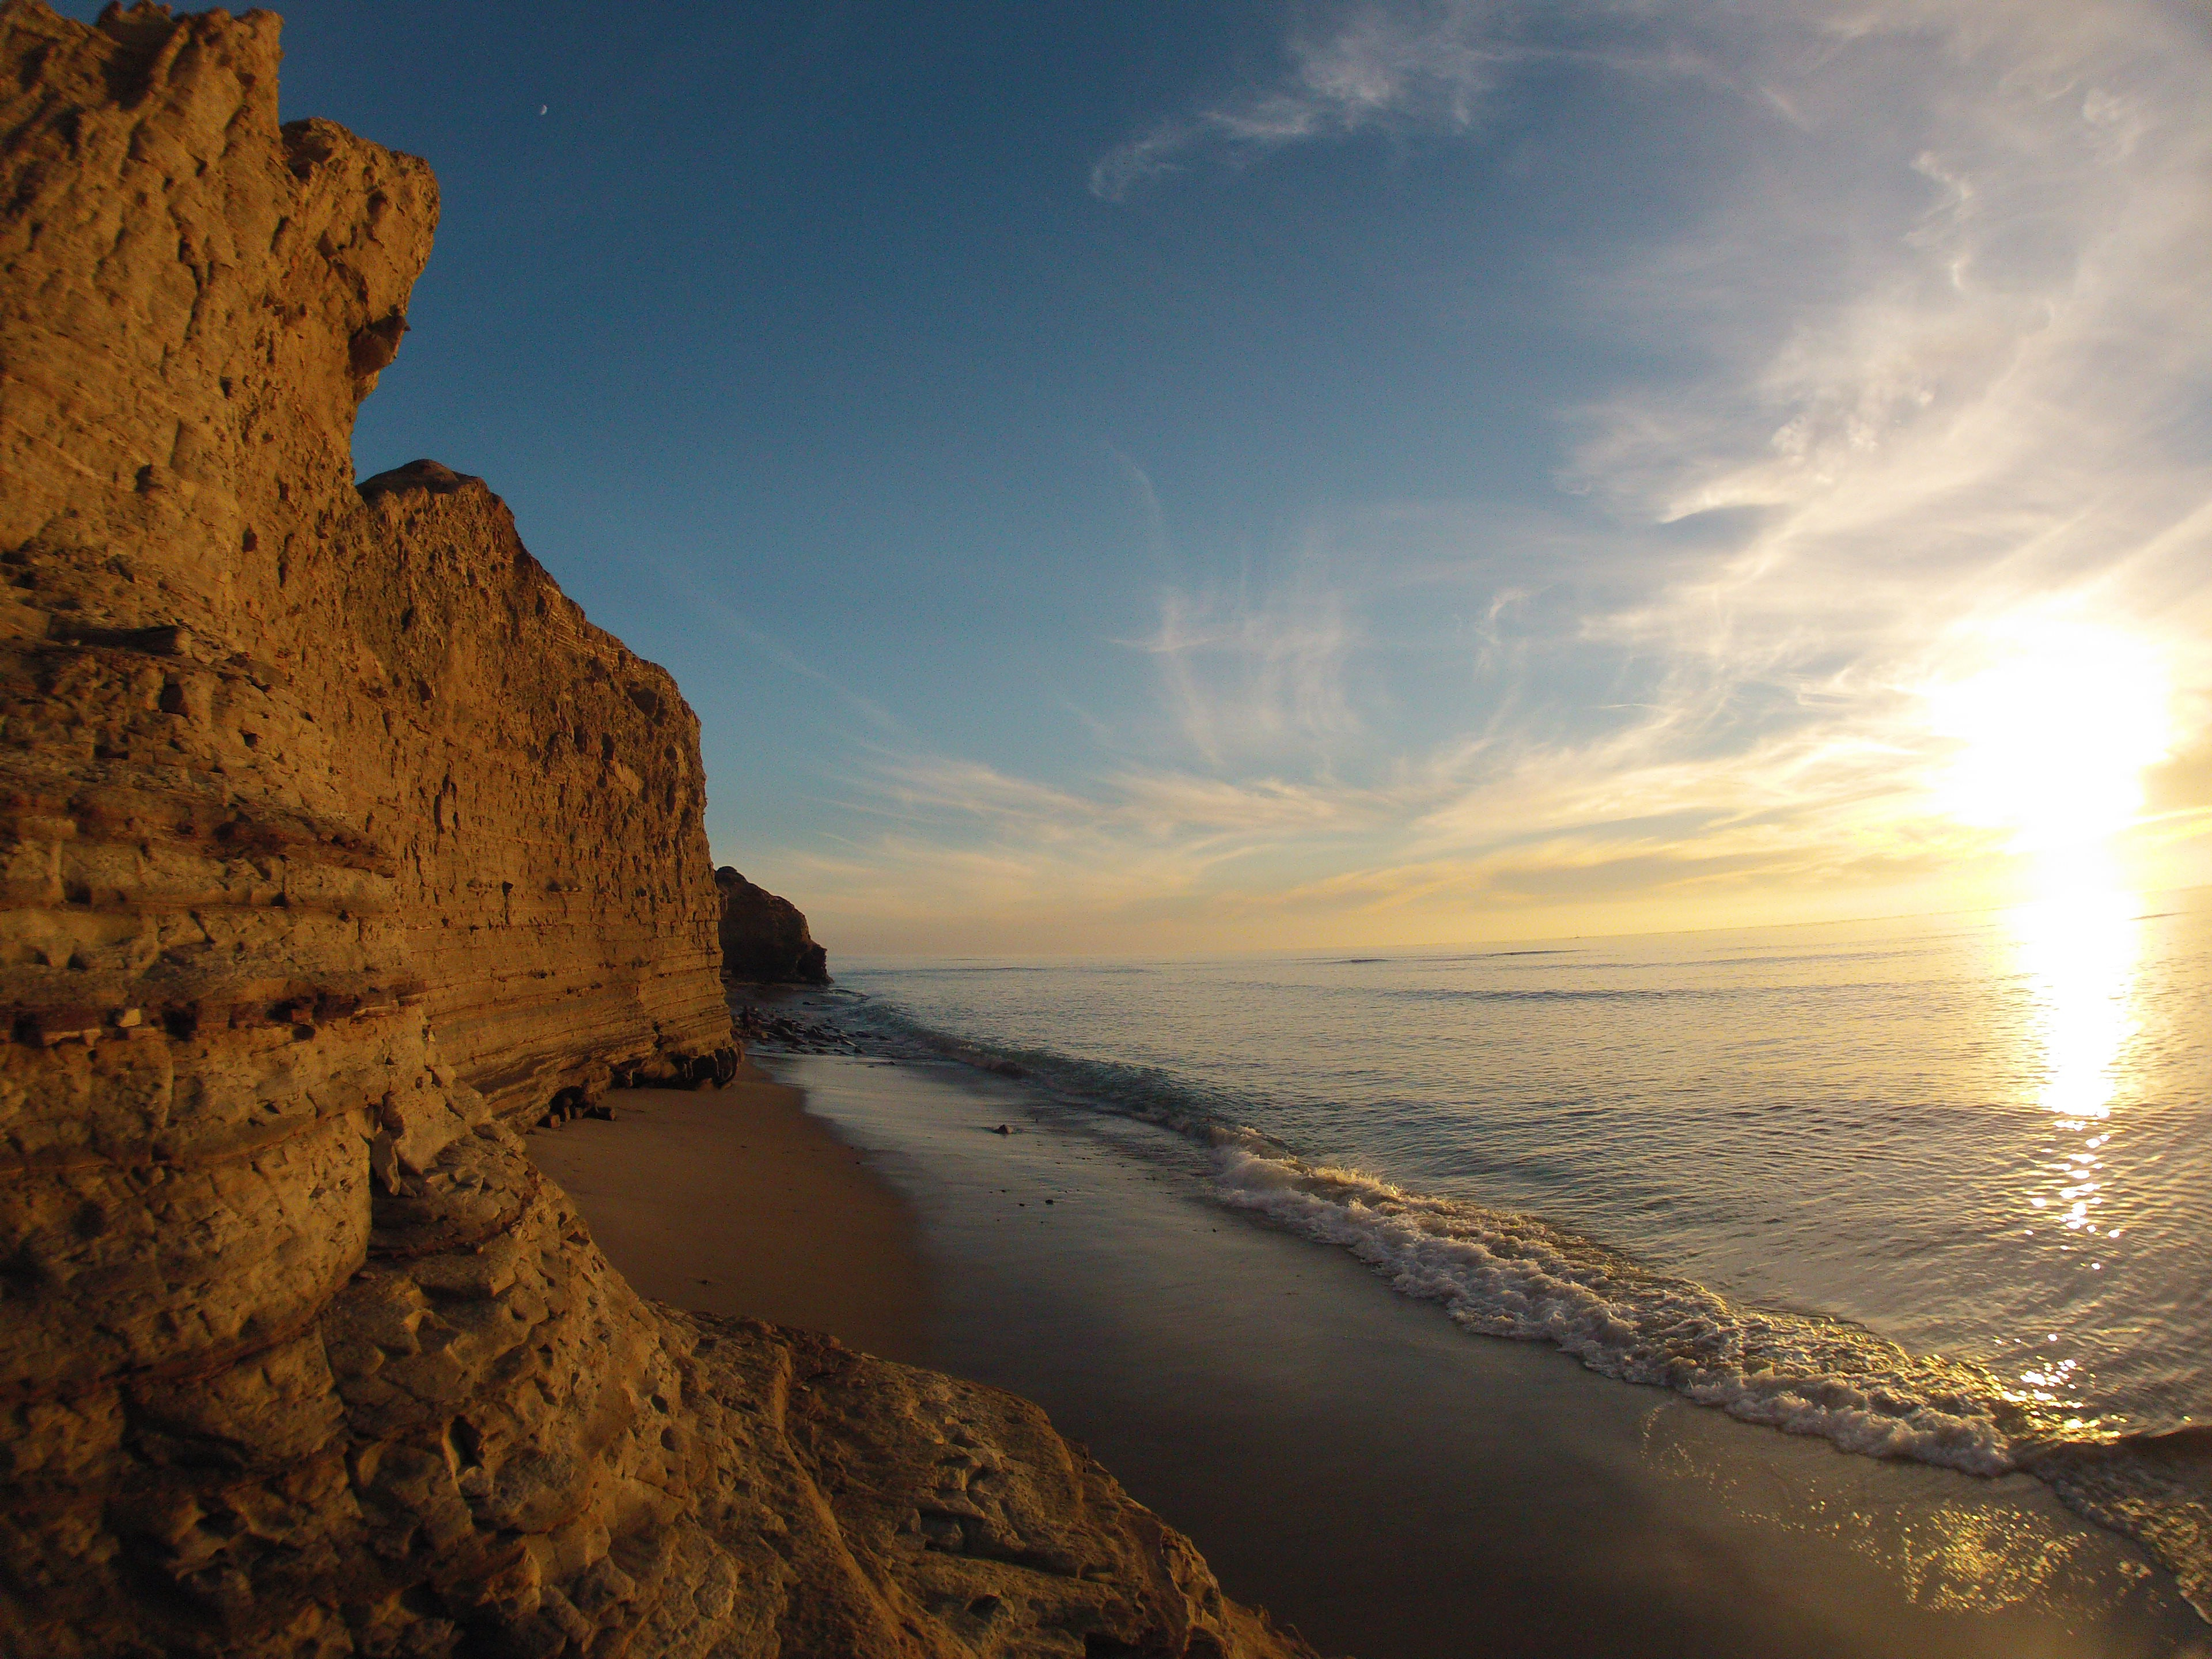 A tall rock wall behind a small beach area, taken during sunset.